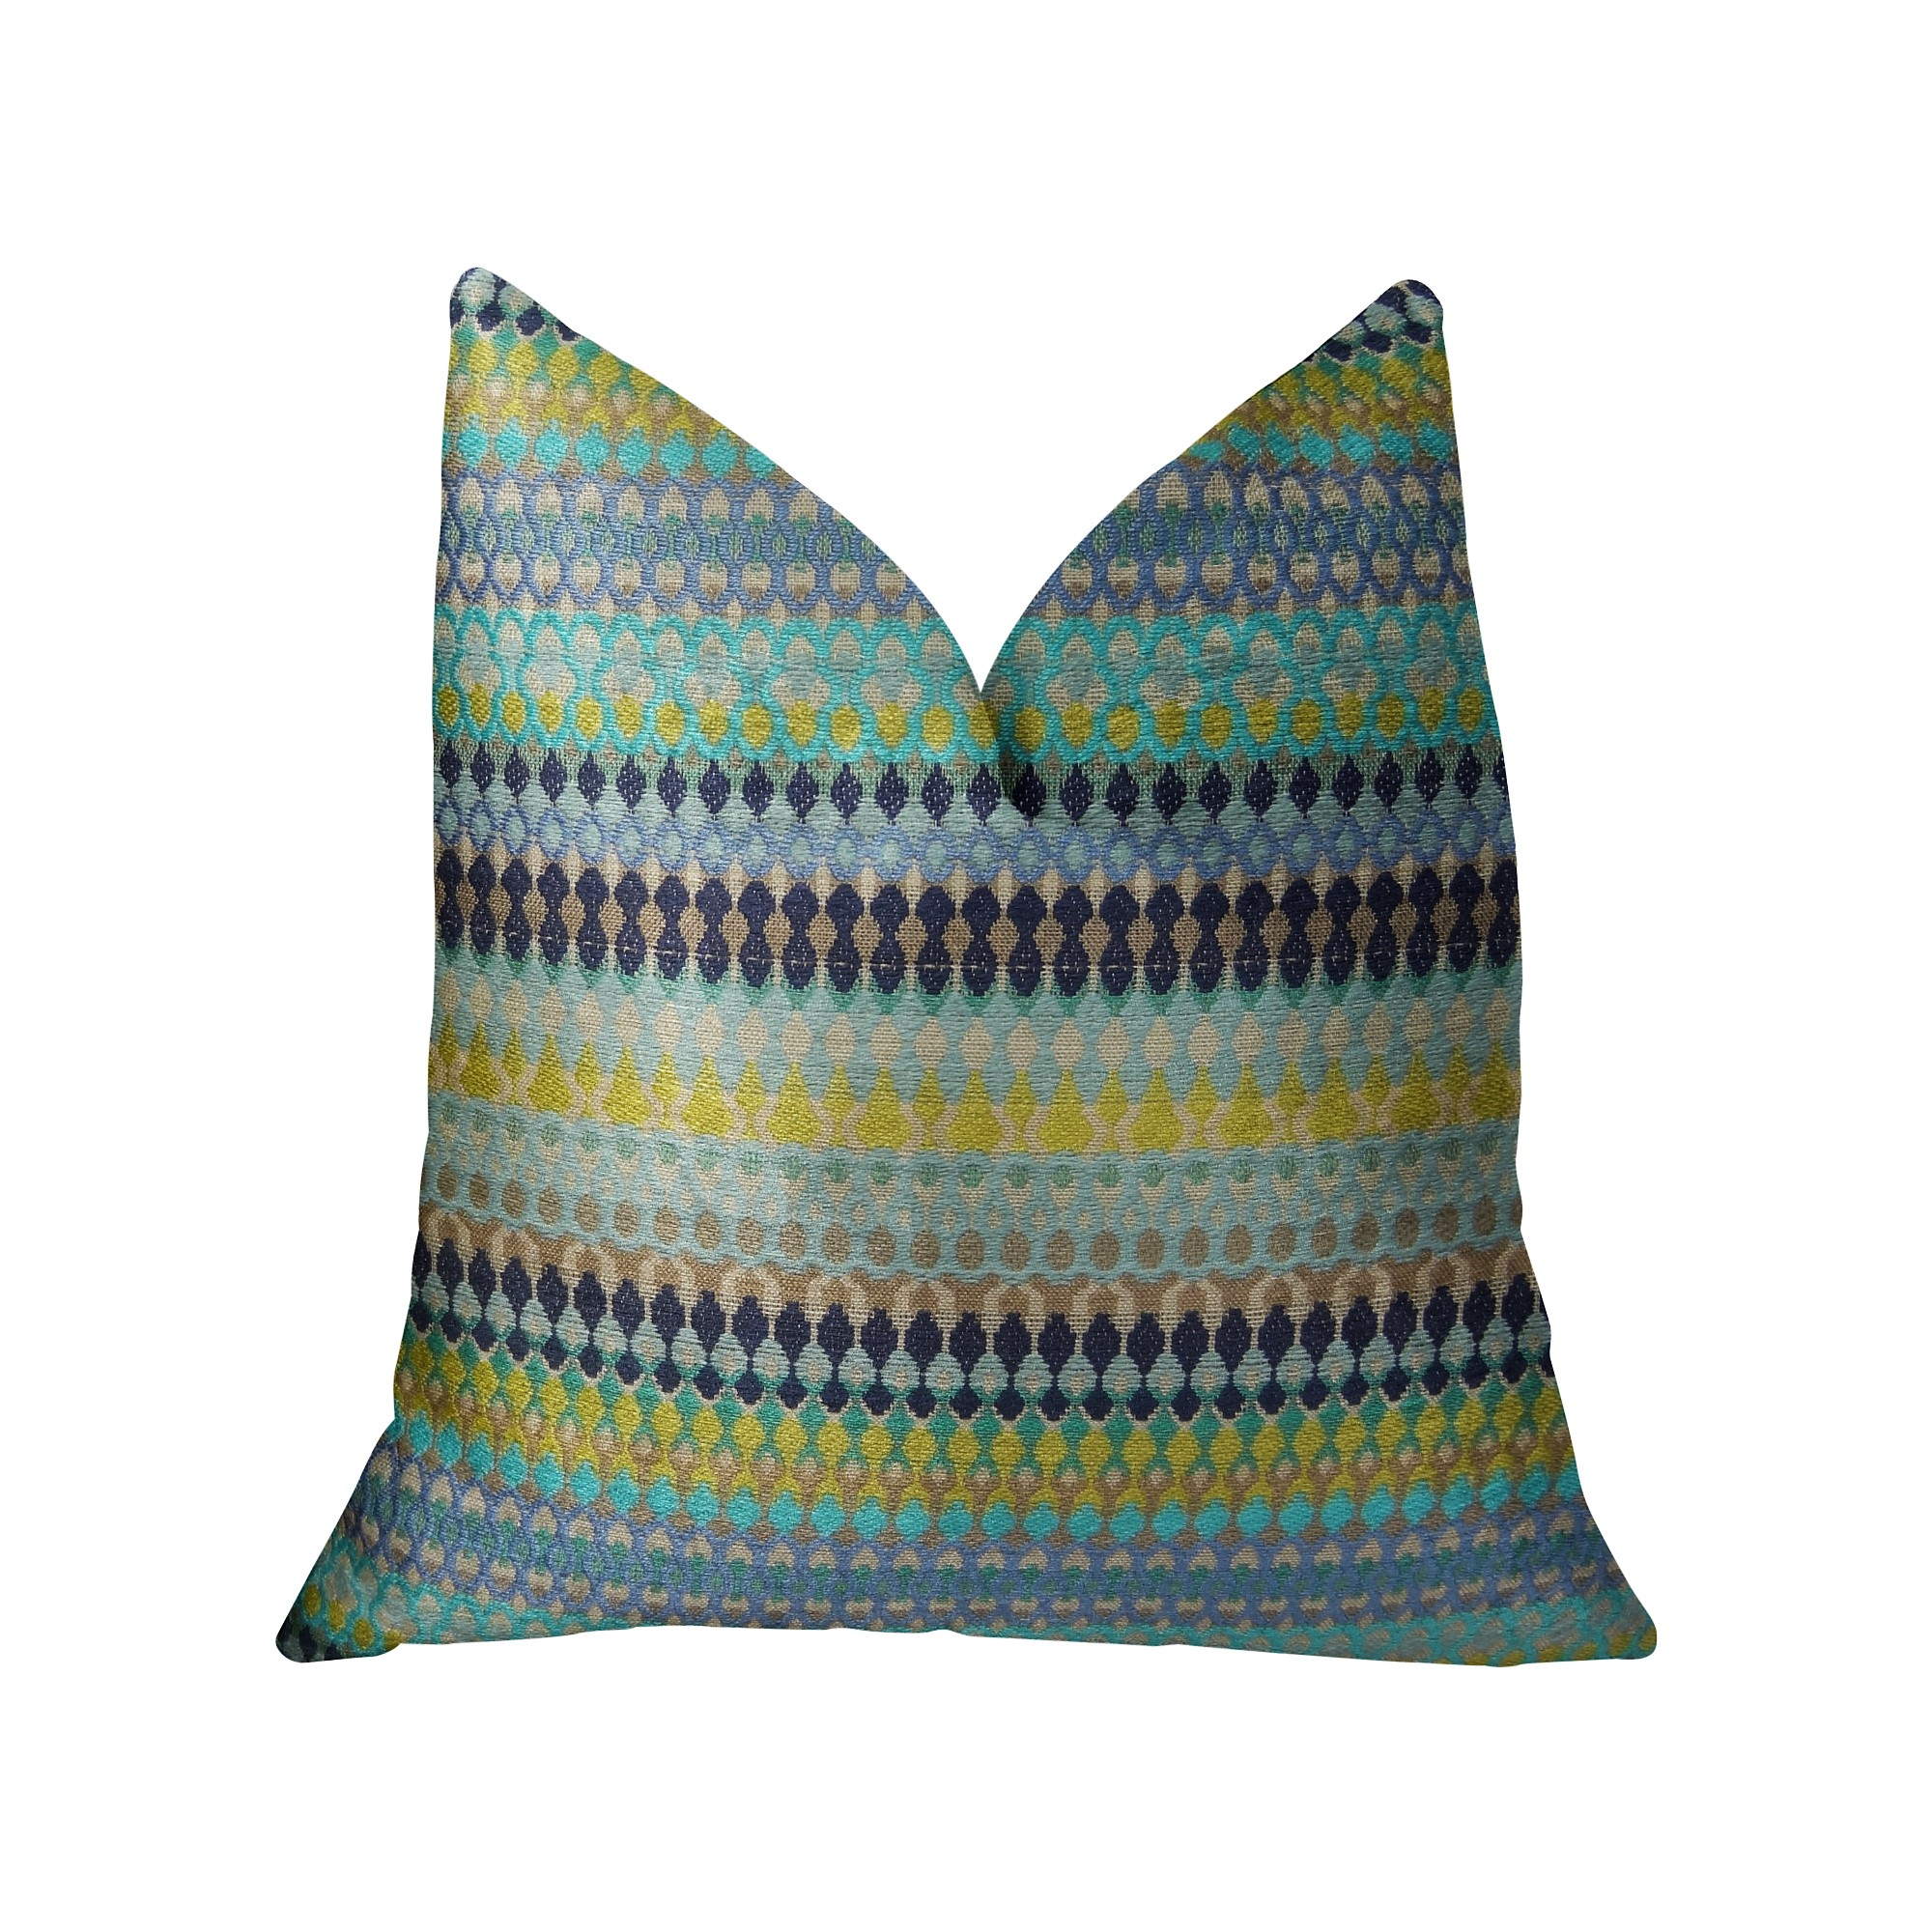 Plutus Alpenglow Turquoise Handmade Throw Pillow, Double Sided